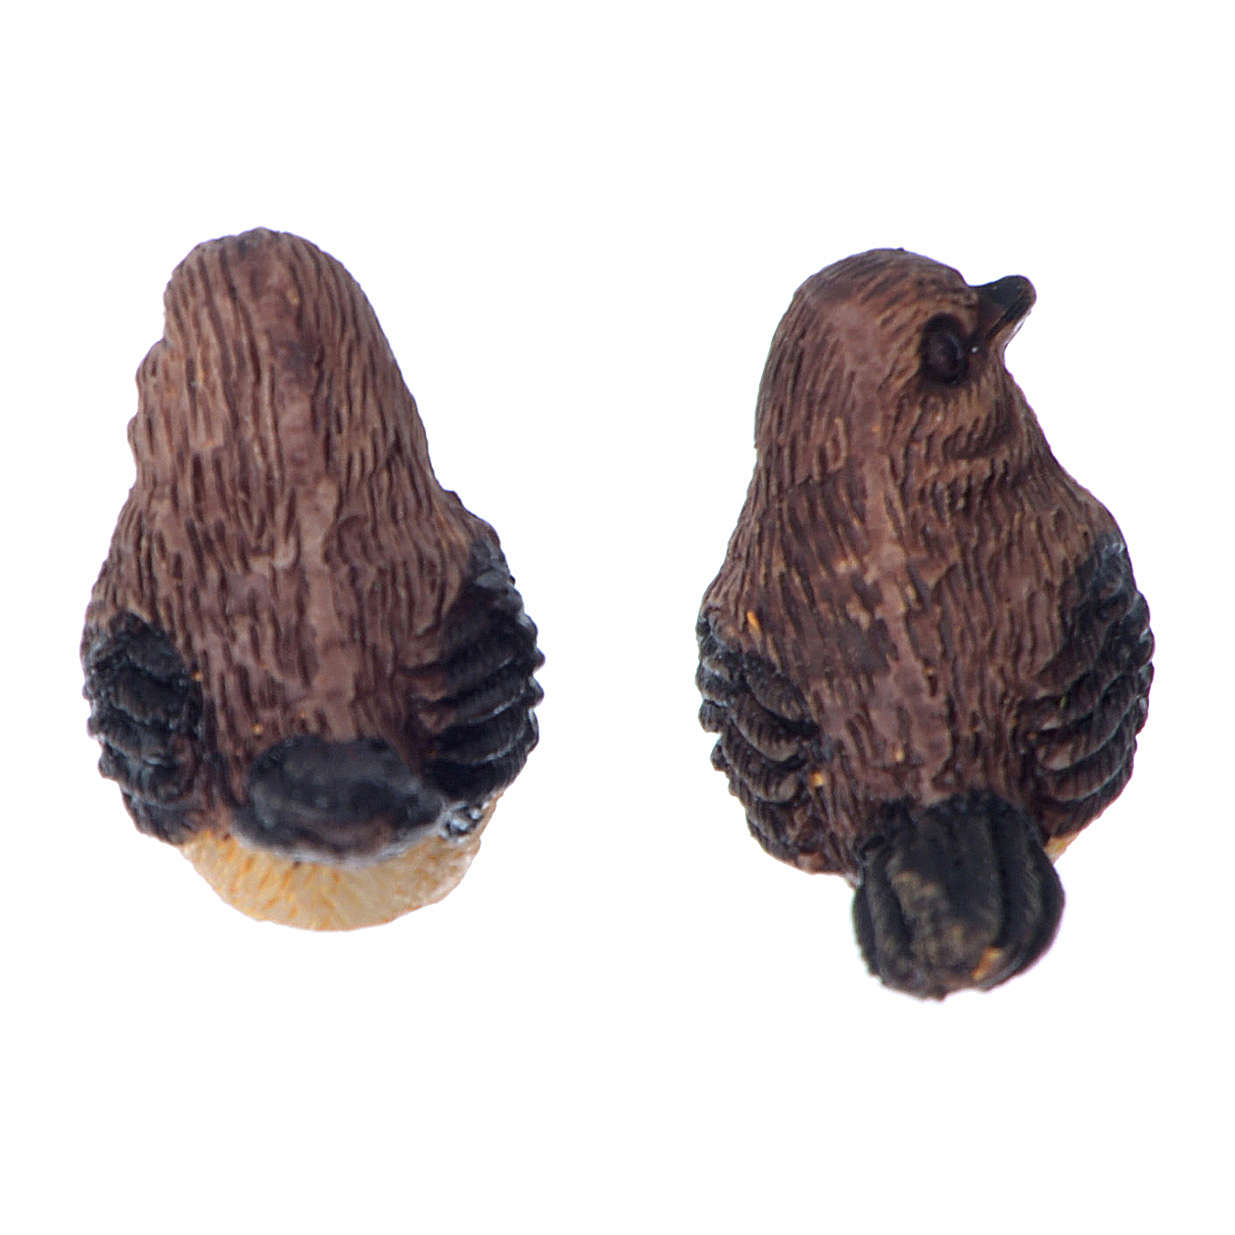 2 Set Bird Couple for 10-12 cm nativity in painted resin 3